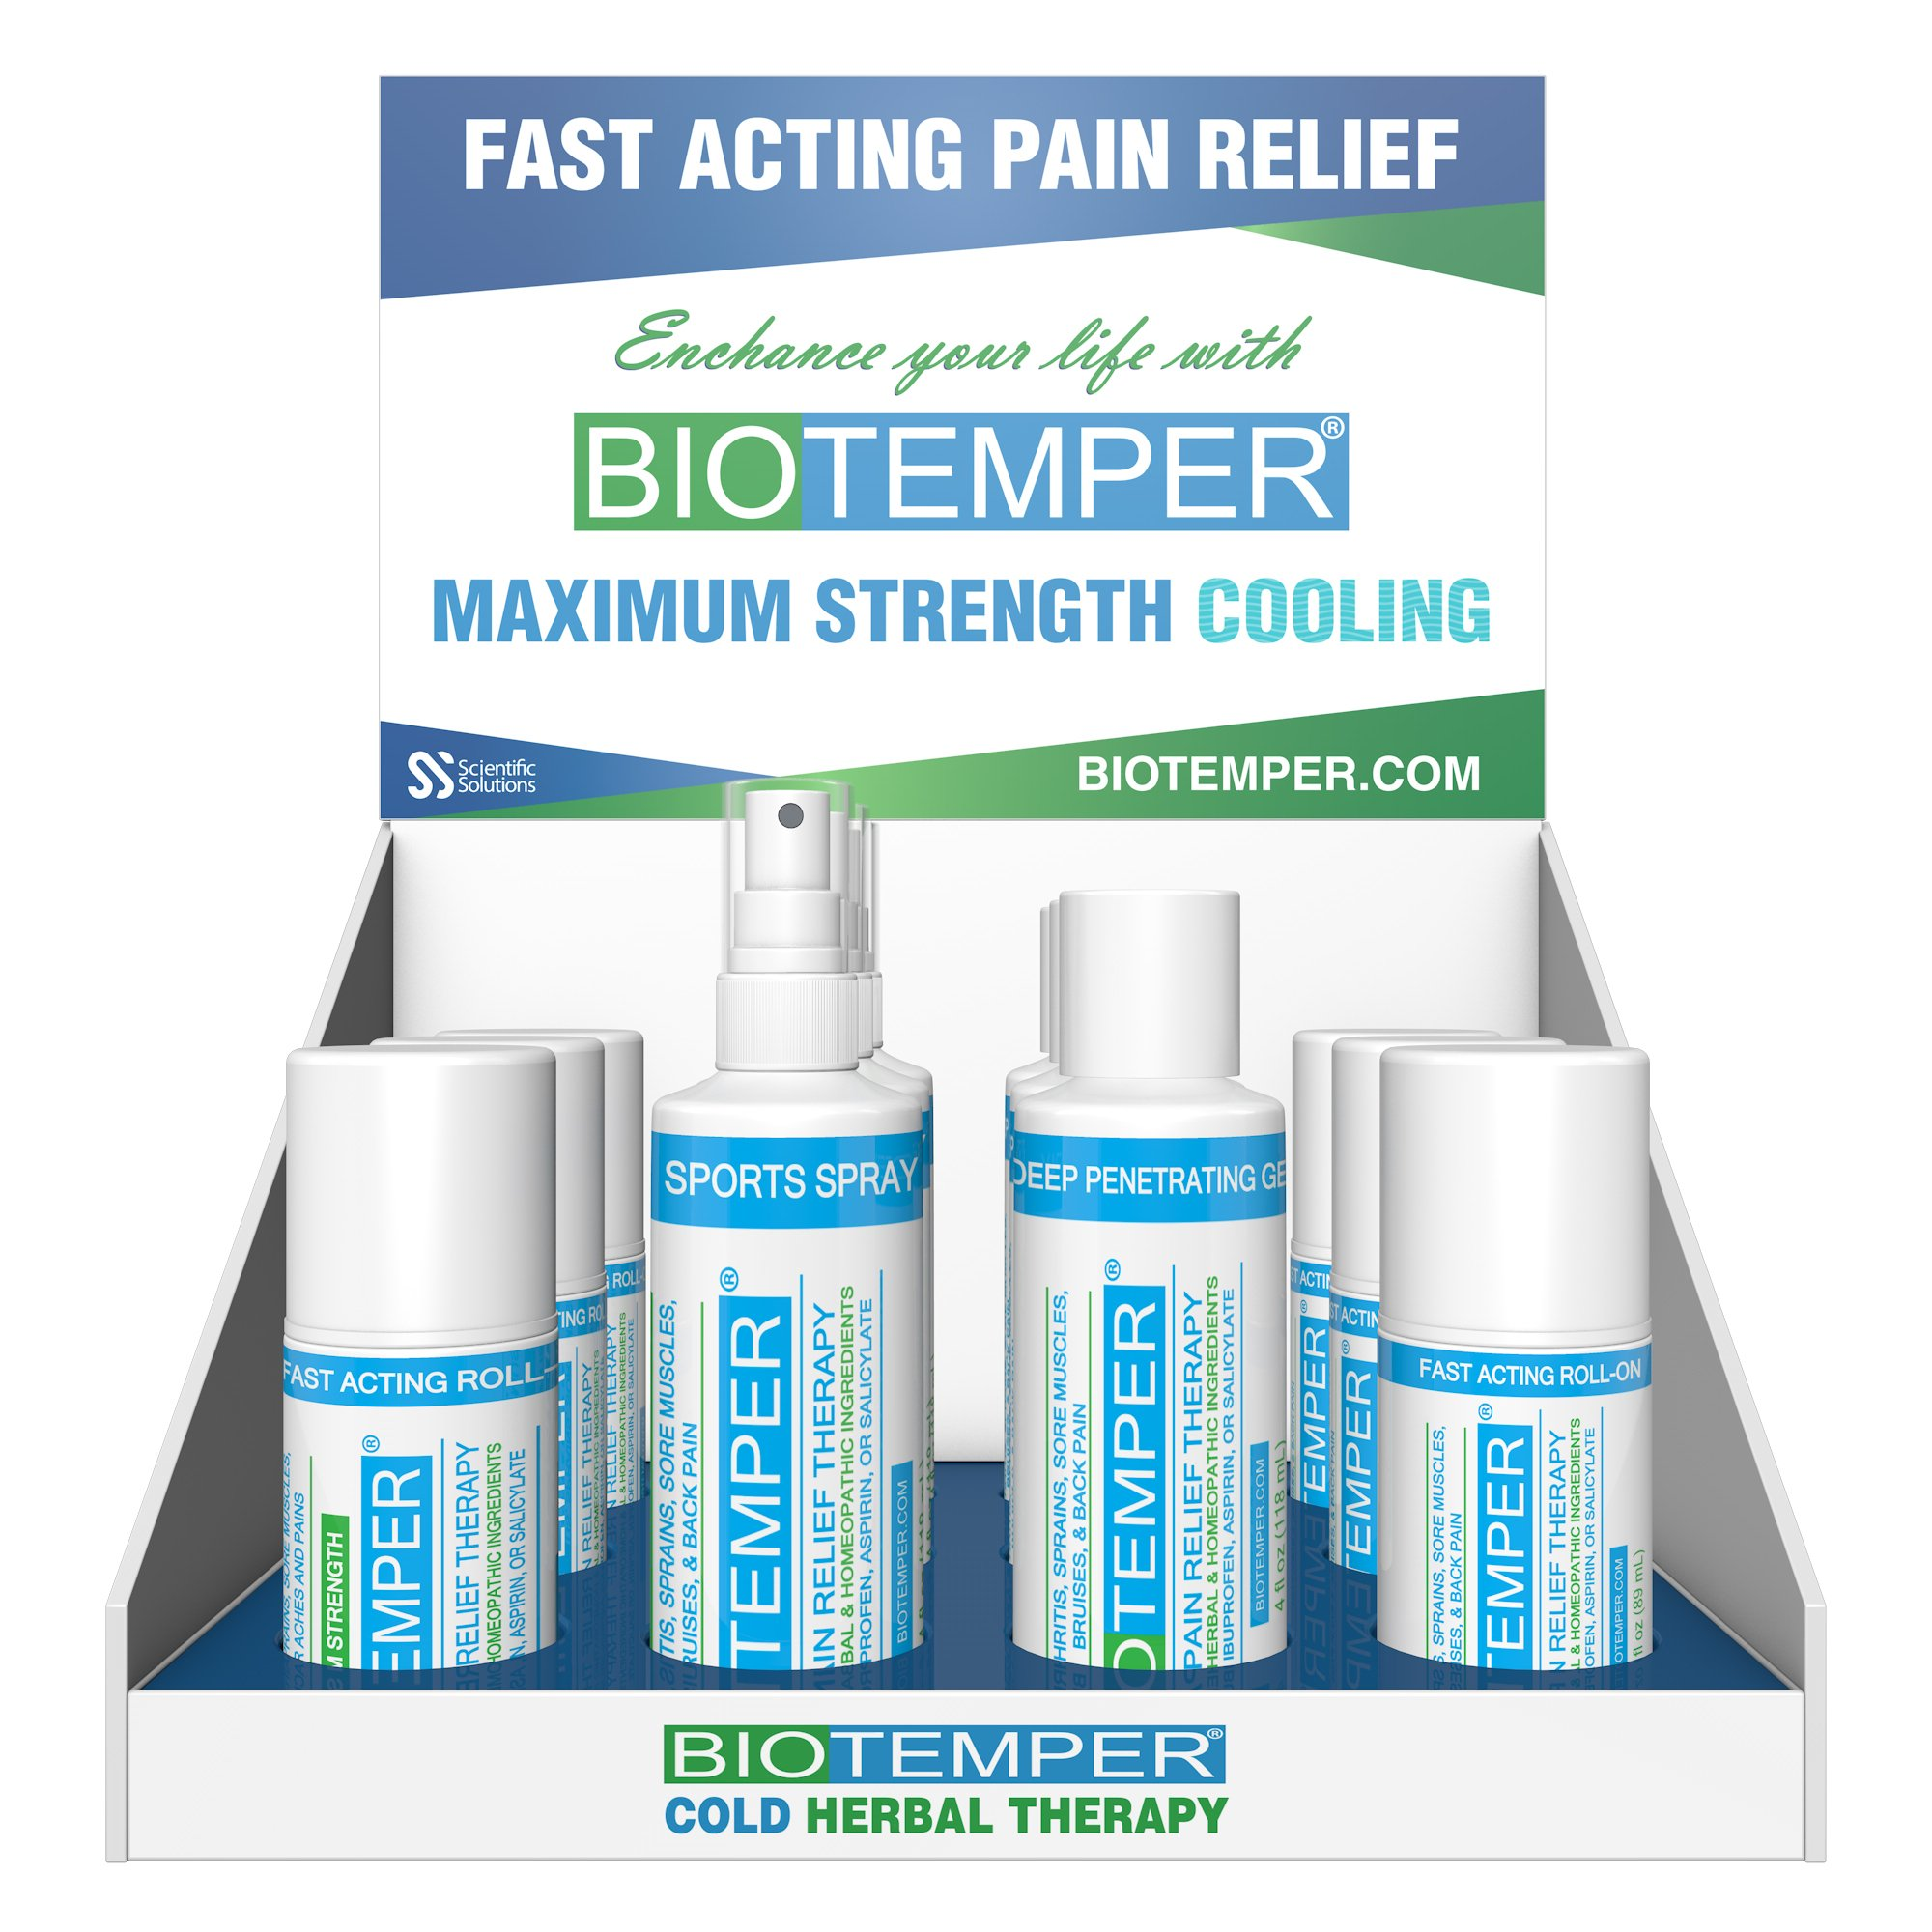 BioTemper Pain Reliever Display Kit, 4 oz. Spray/ 4oz. Tube/ 3 oz. Roll-on, For Fibromyalgia, Plantar Fasciitis, Arthritis, Back Pain, Sciatica, Chronic Pain, Joint and Muscle Pain Relief